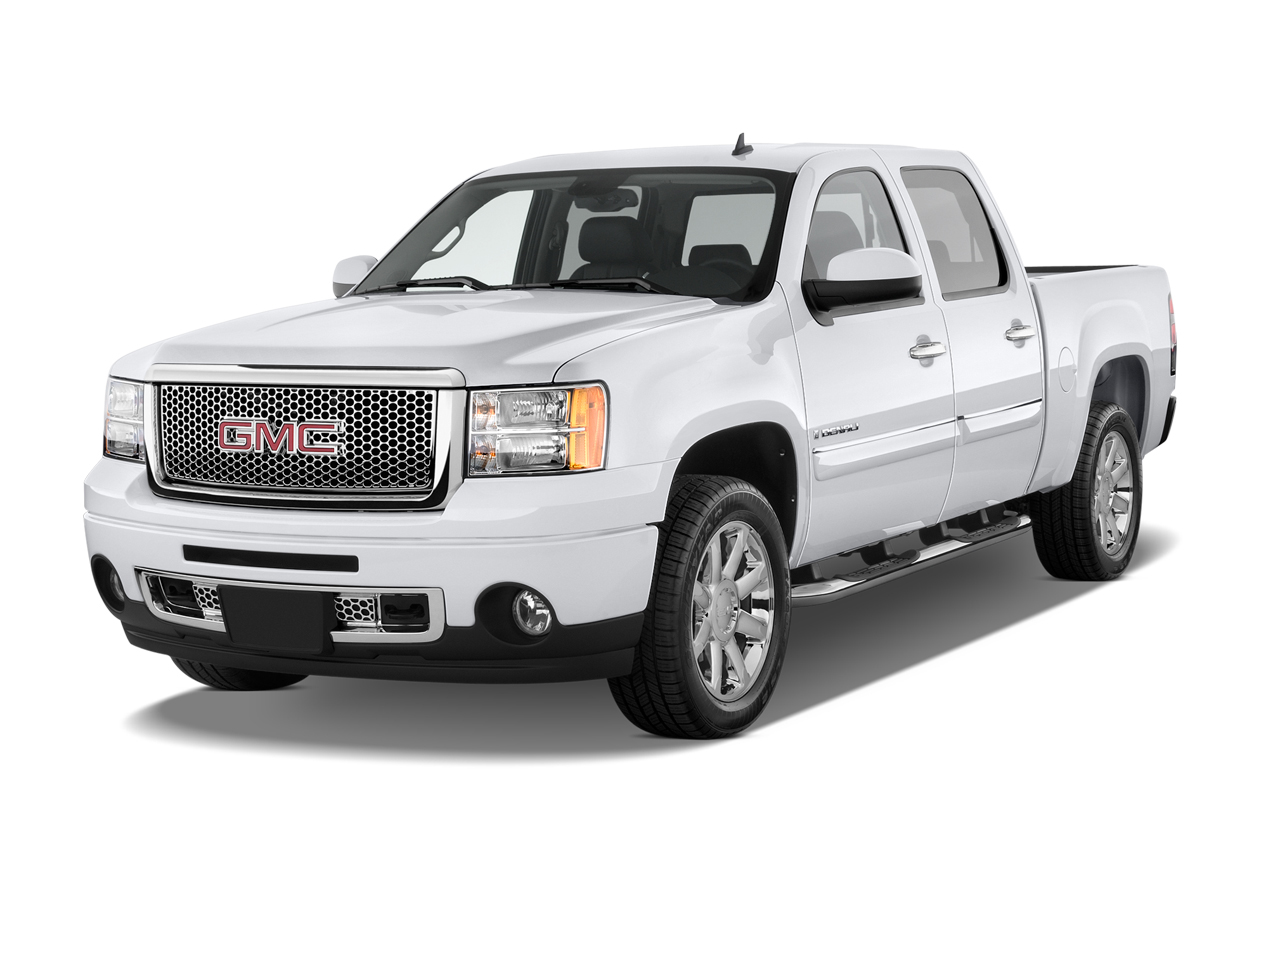 2012 Gmc Sierra 1500 Gas Mileage The Car Connection